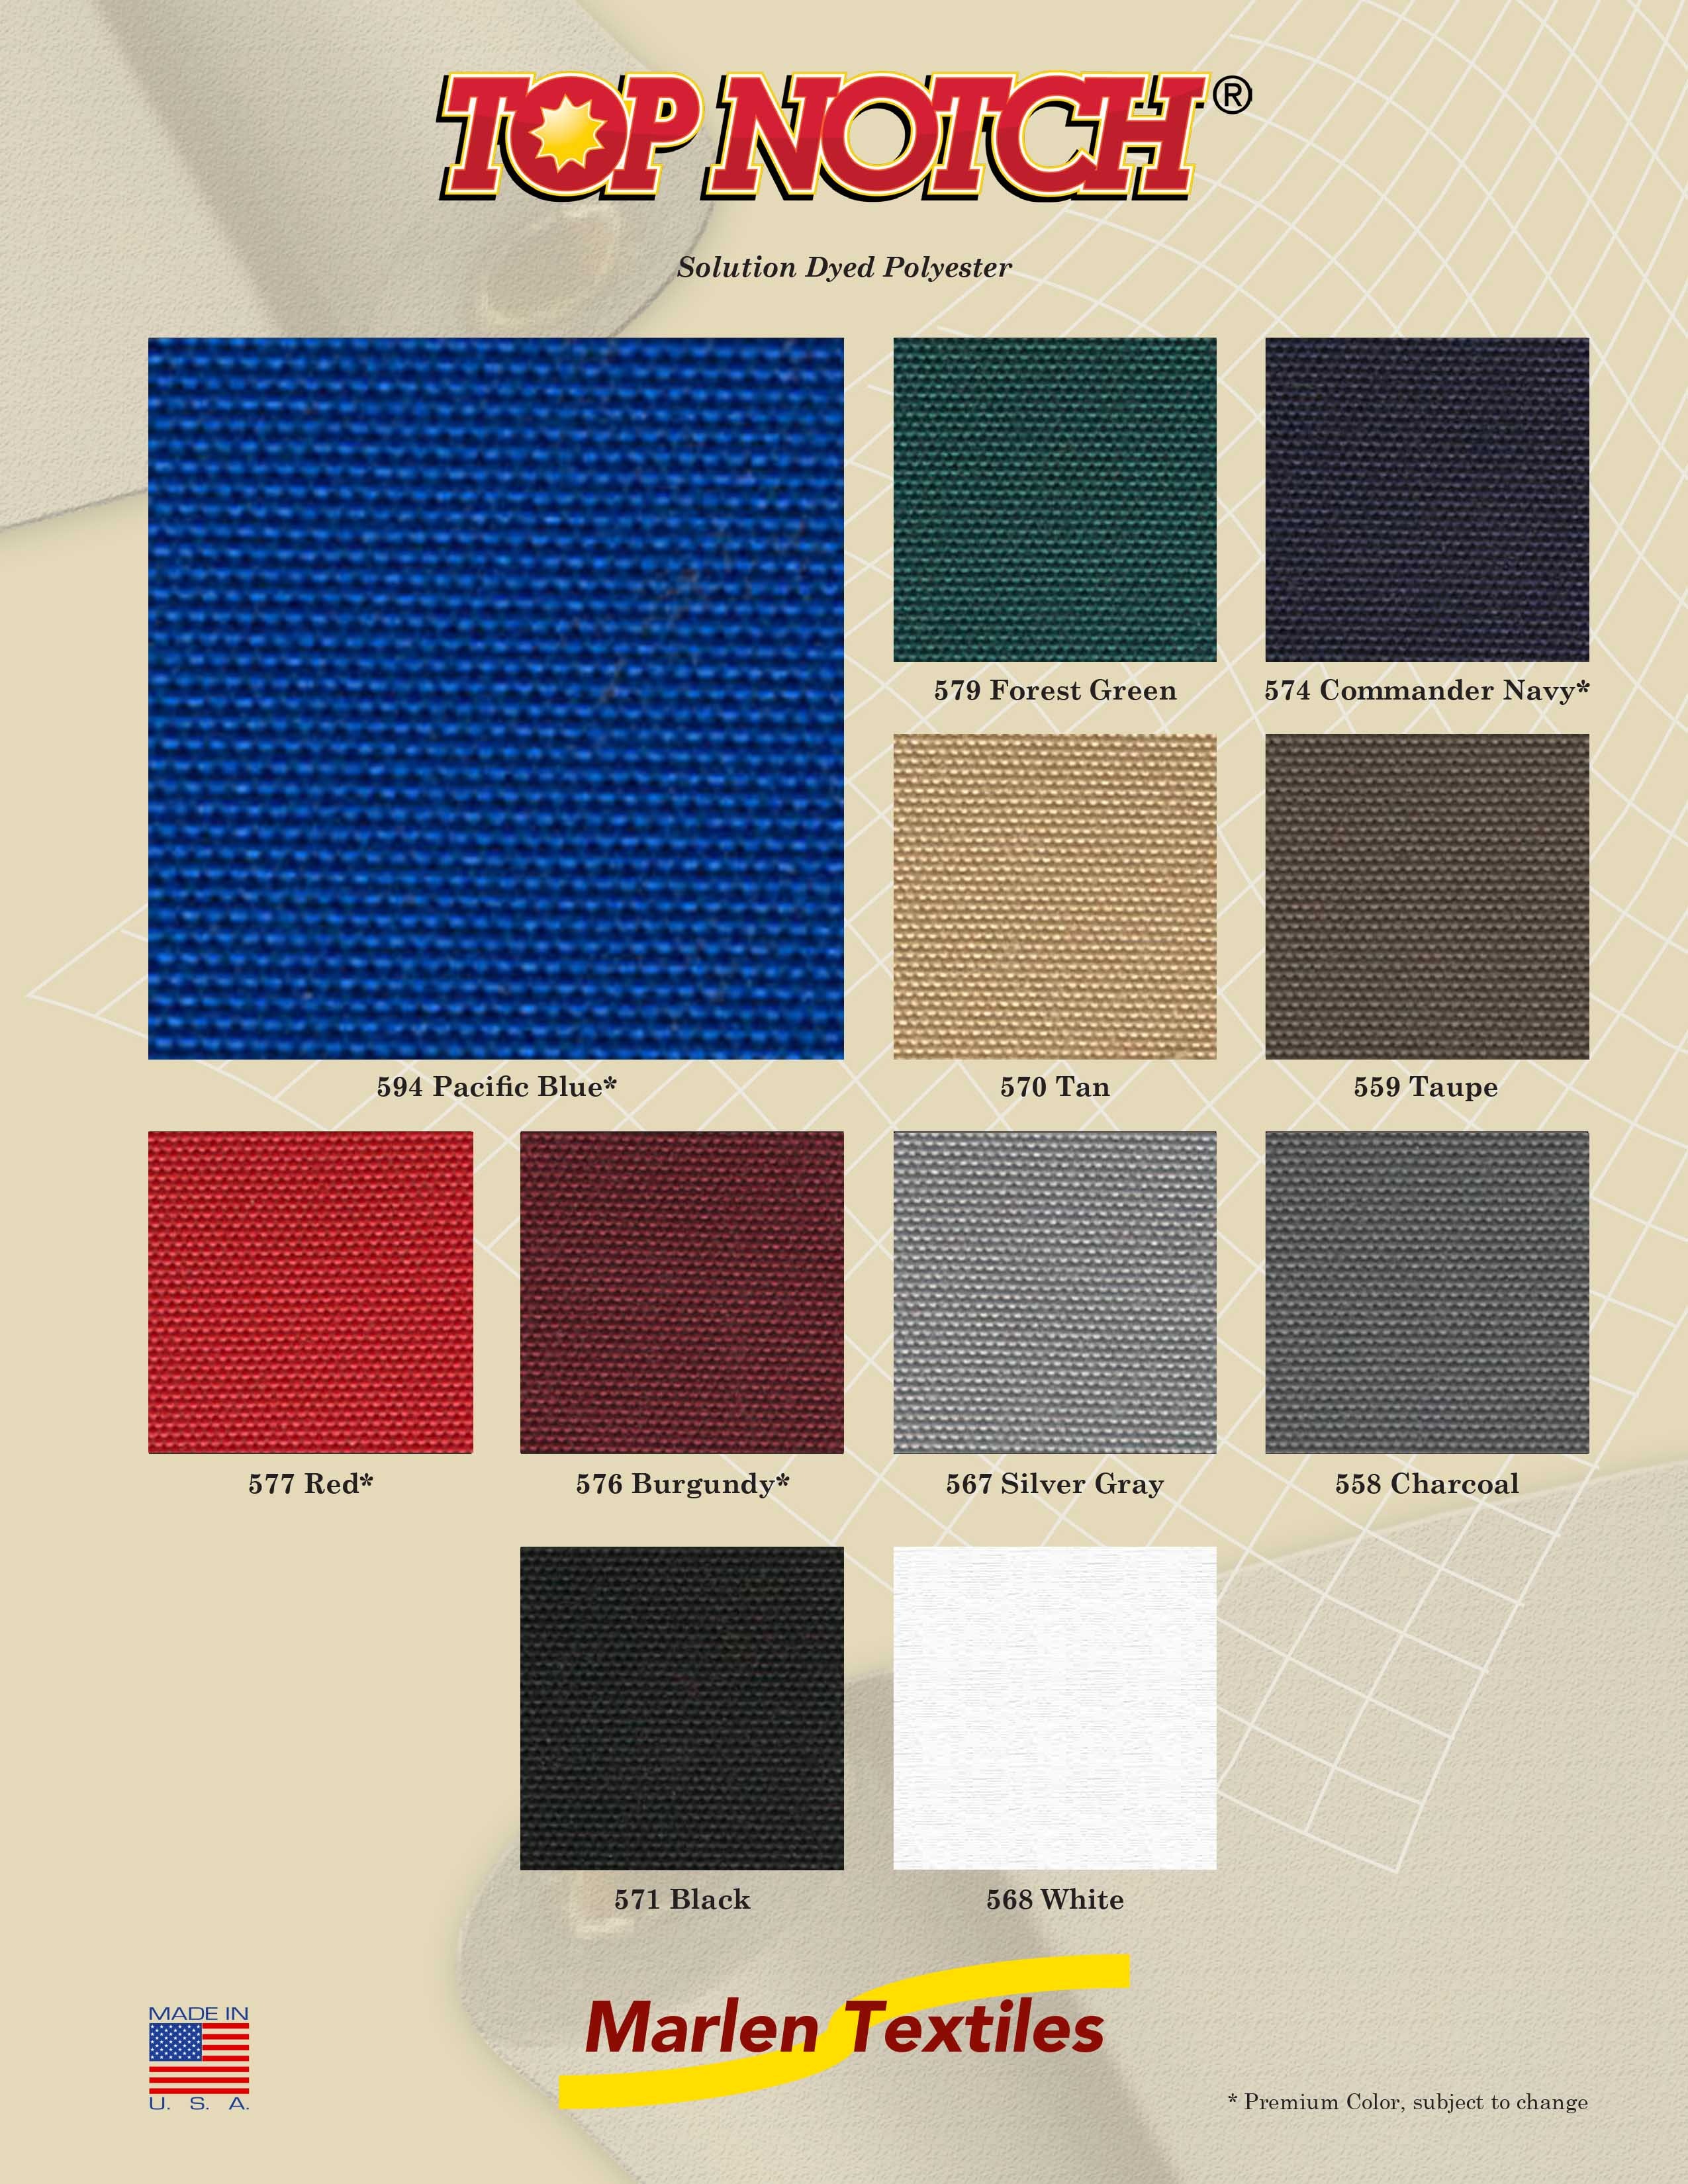 Marlen Textiles Top Notch Solution Dyed Polyester Fabric Colors For Boat Covers Awnings Canopies More